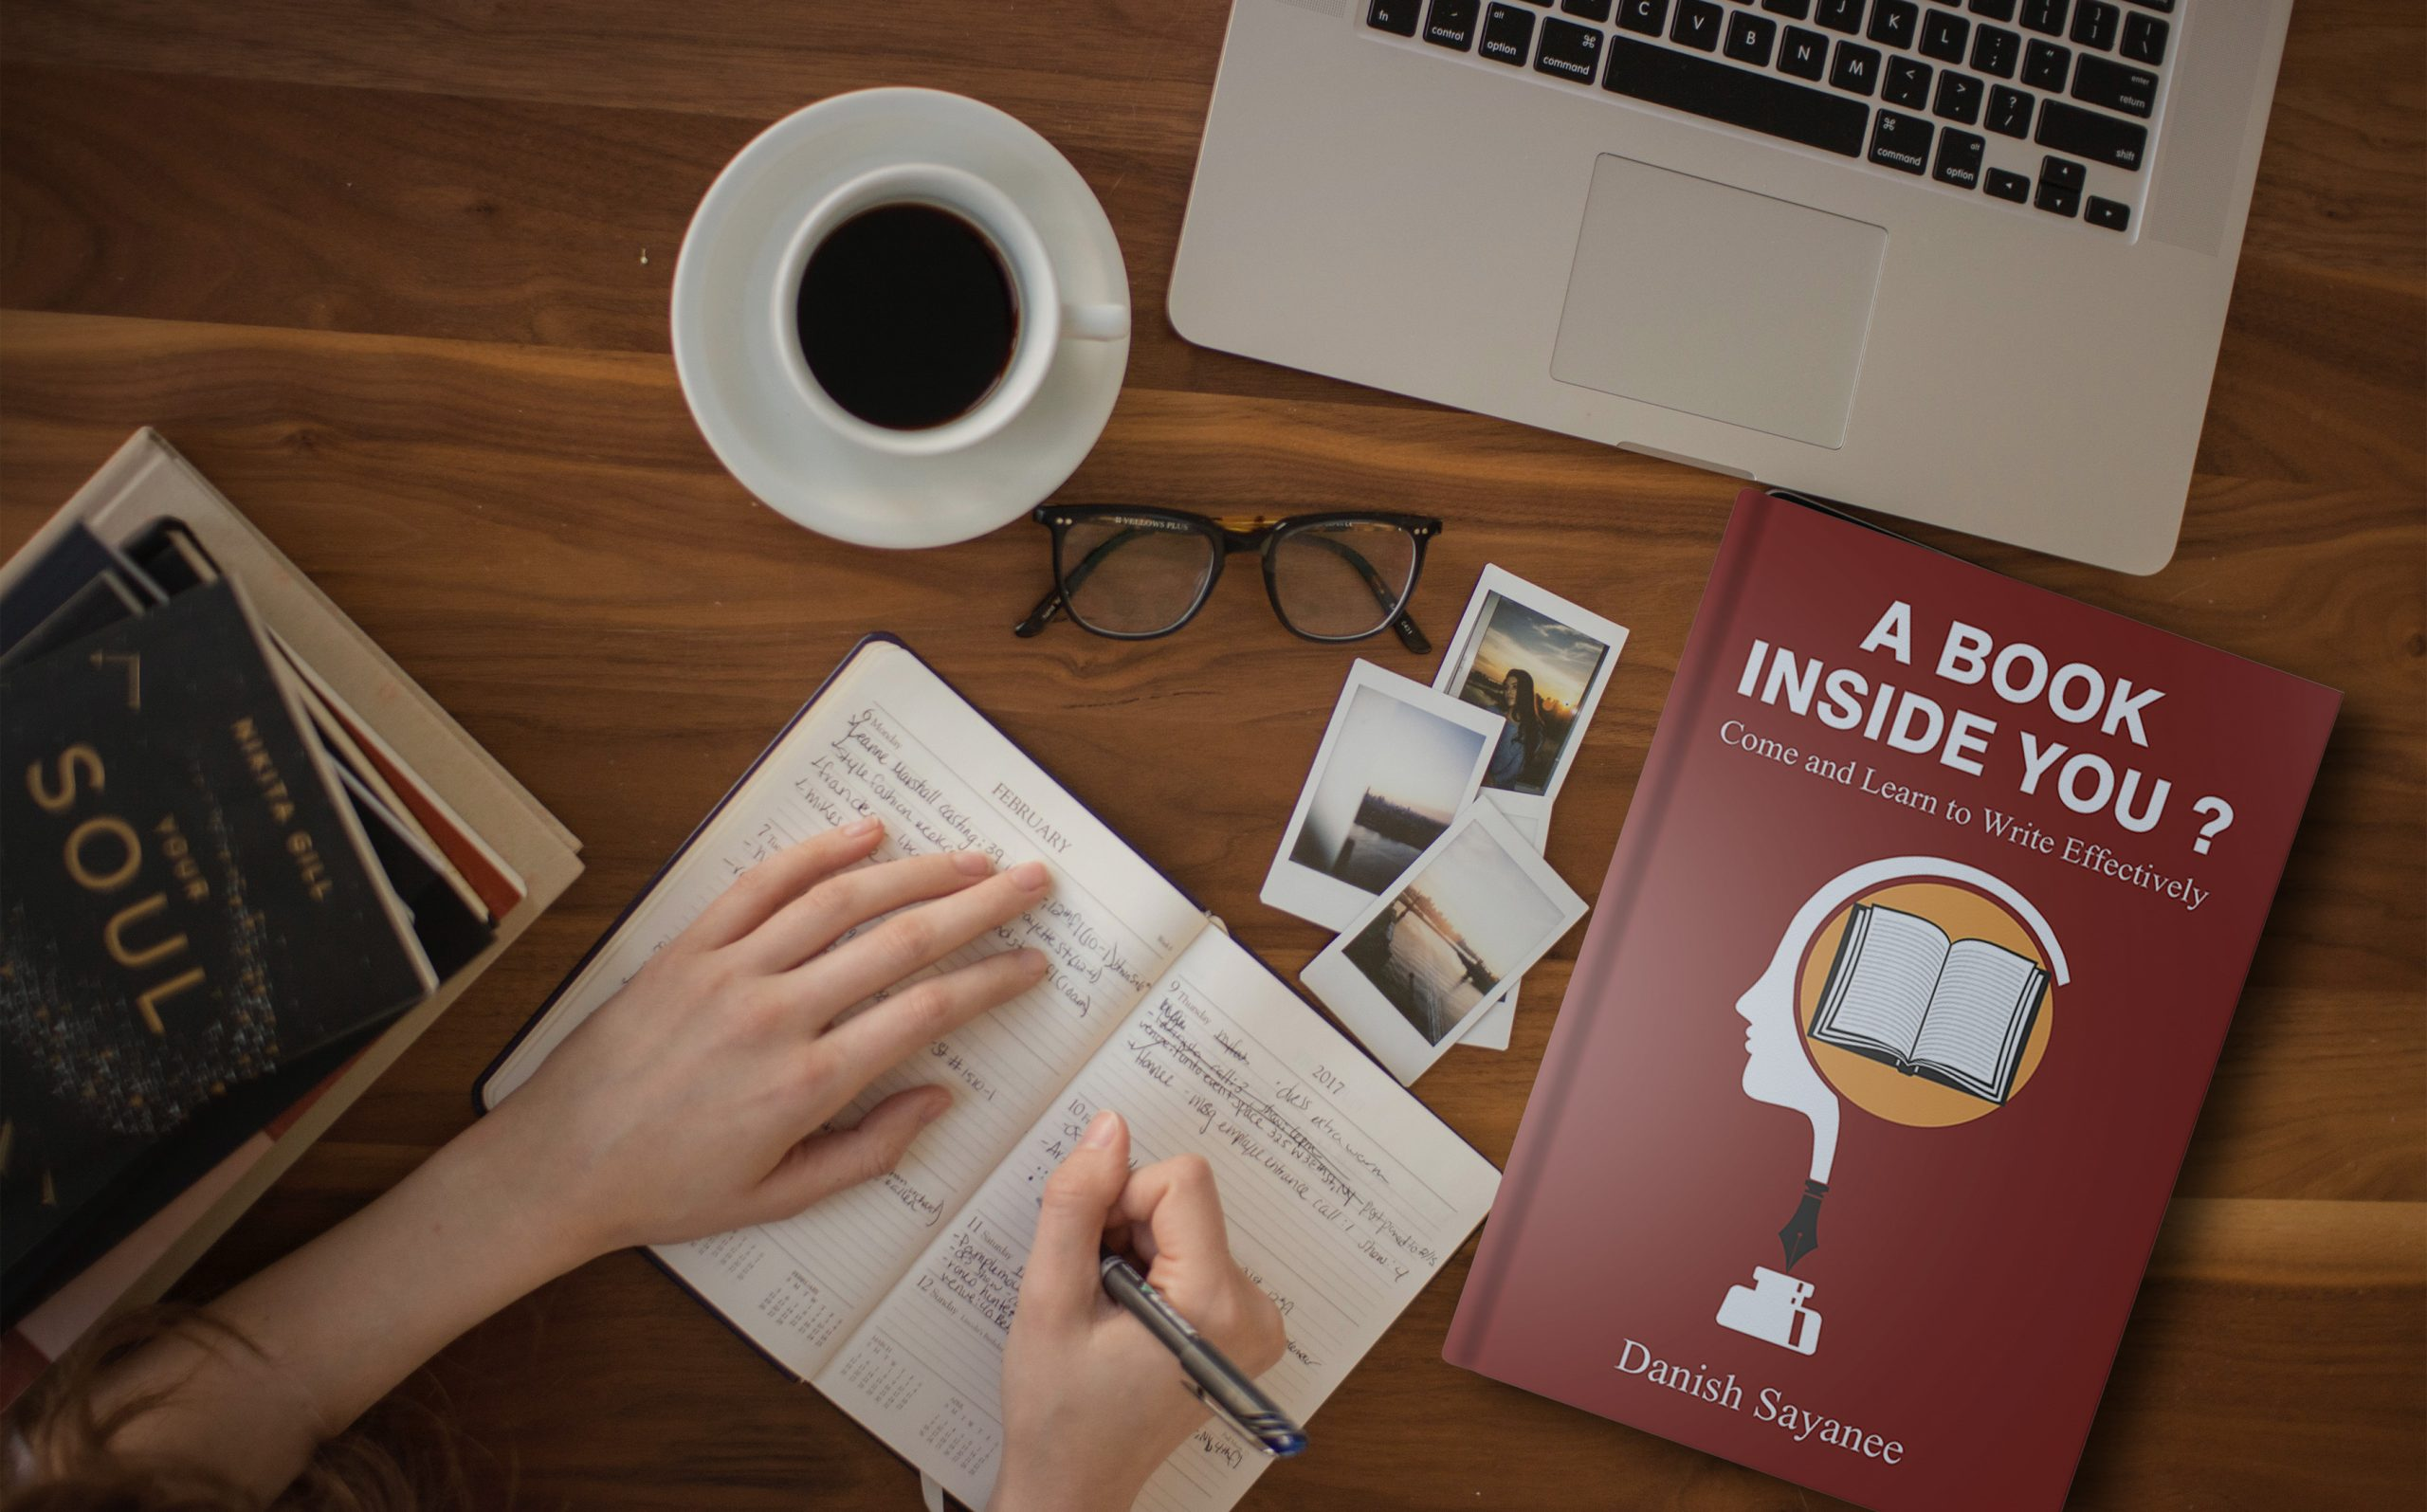 Book Review - A Book Inside You by Danish Sayanee